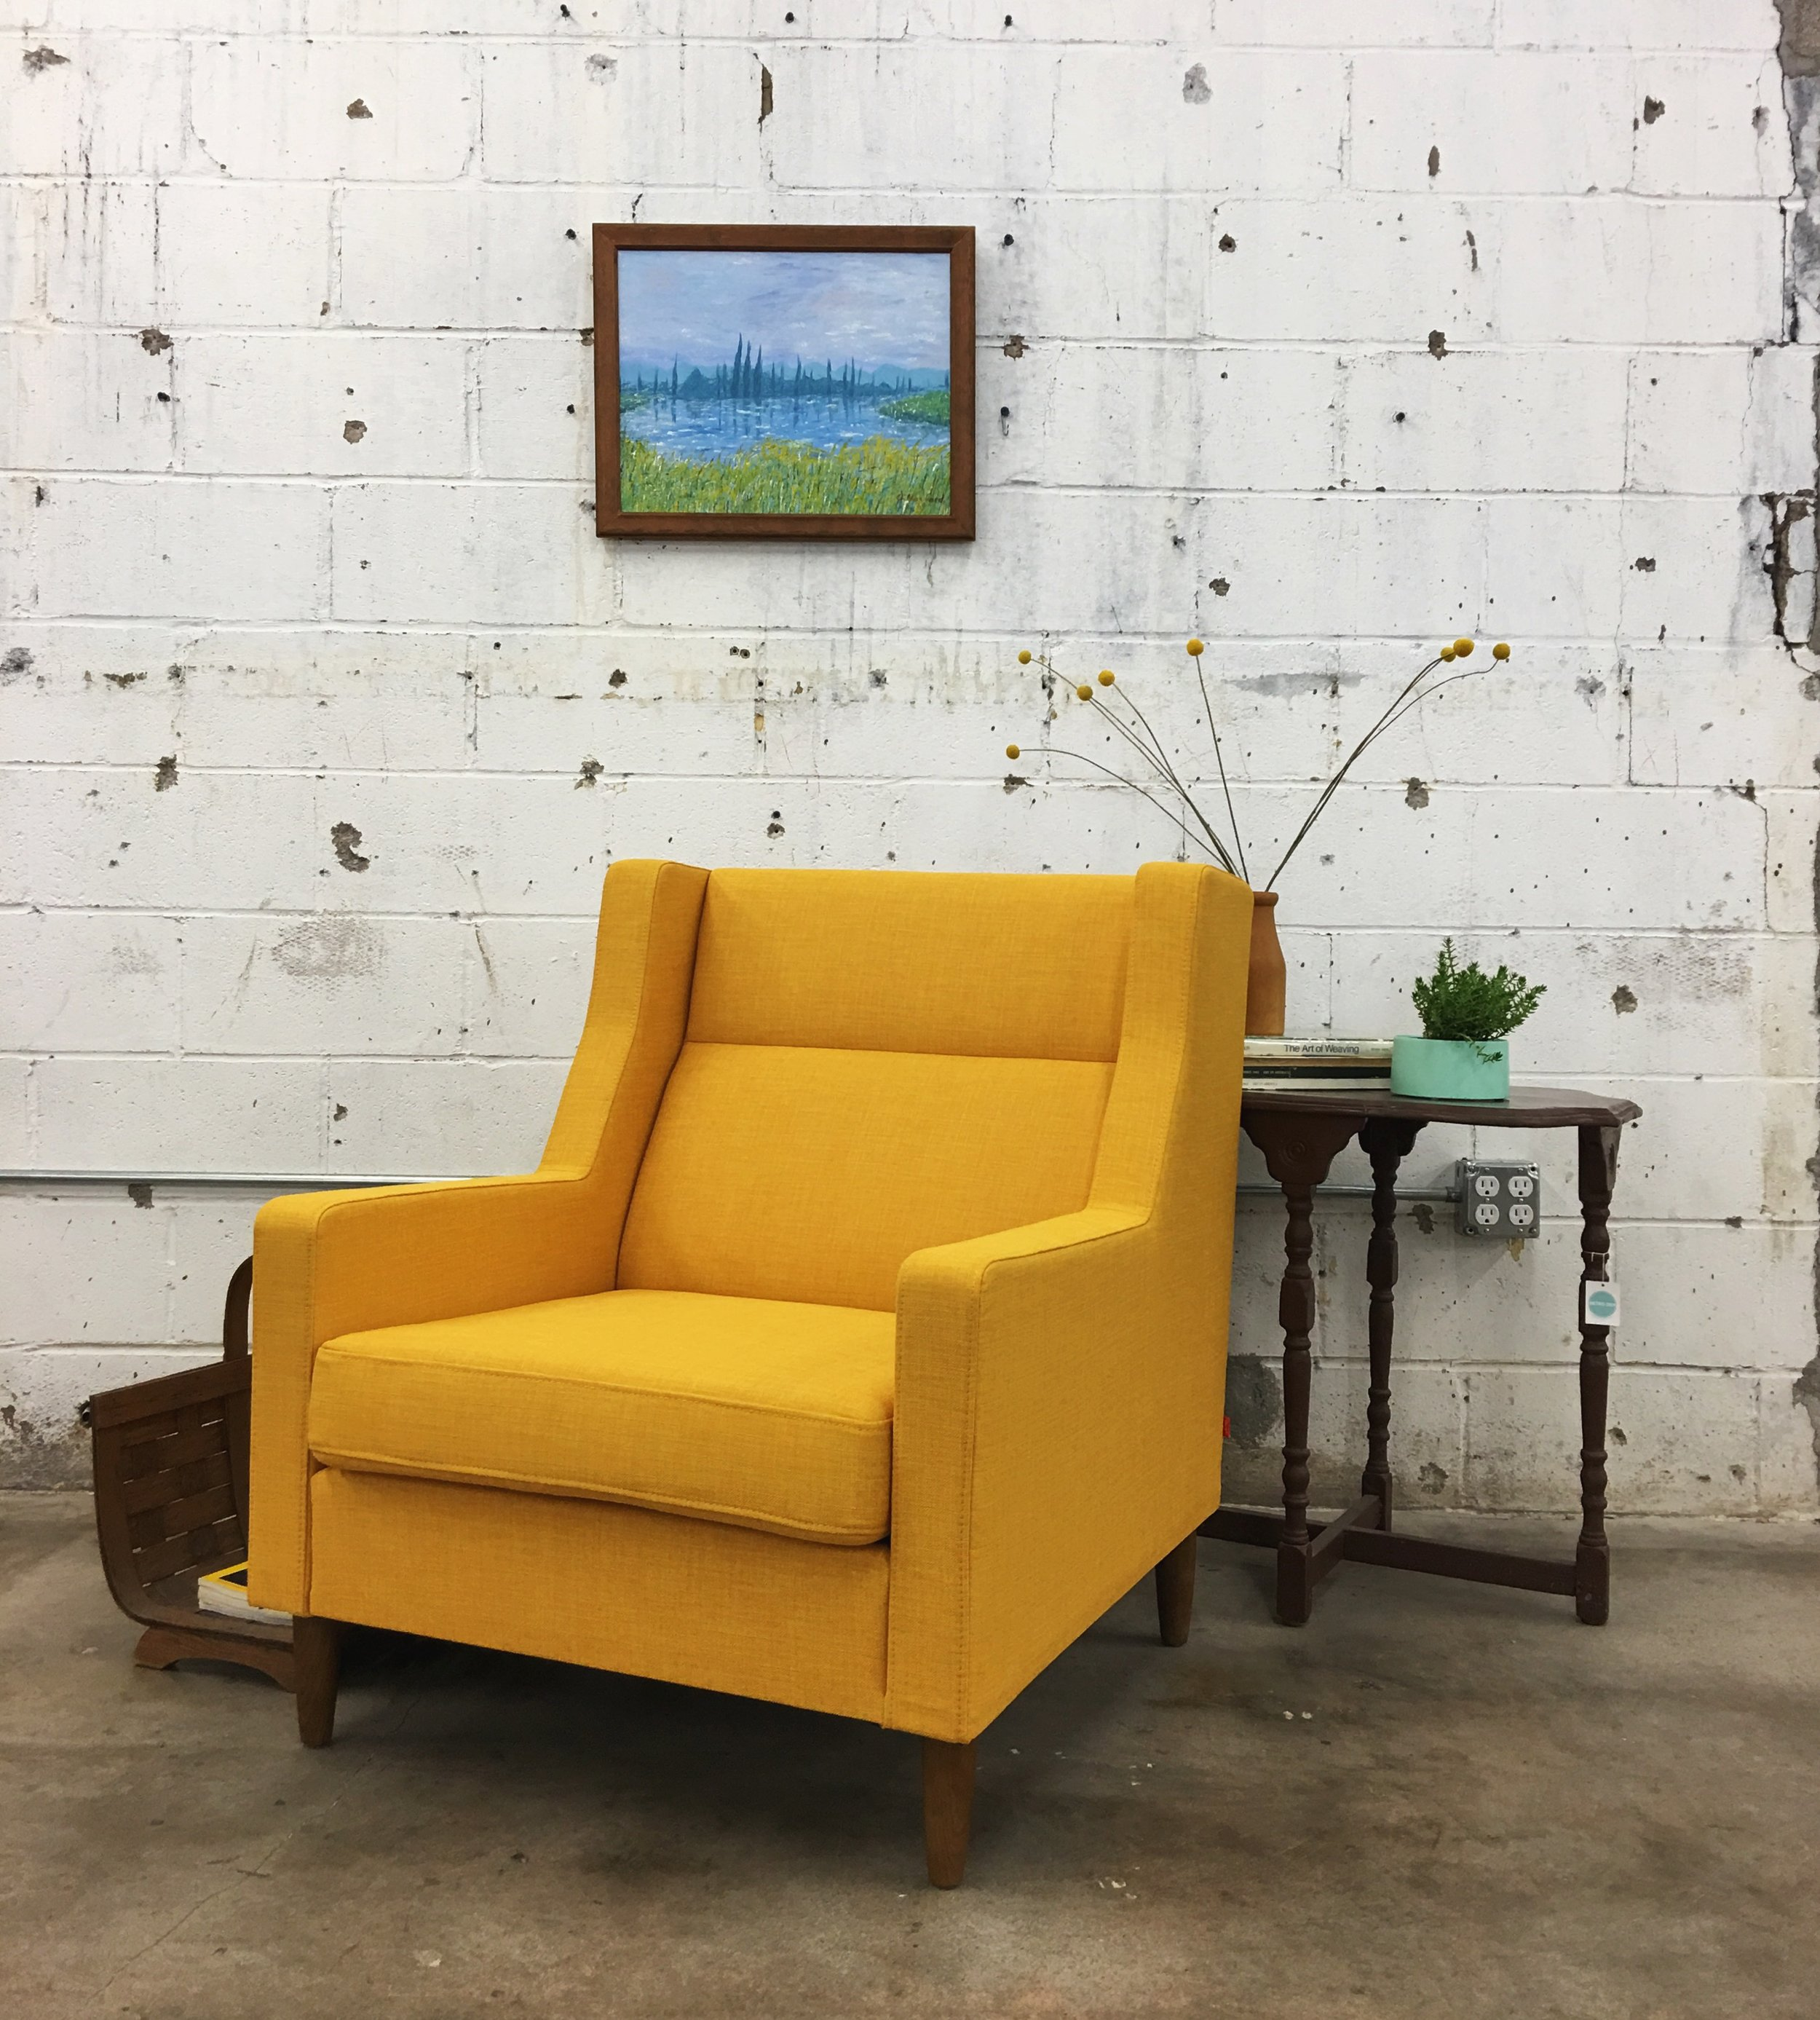 Our sweet home styling clients' Gus* Carmichael Chair came in this week and guess who is digging the color. That's right, ol' school bus yellow lover Palmer.